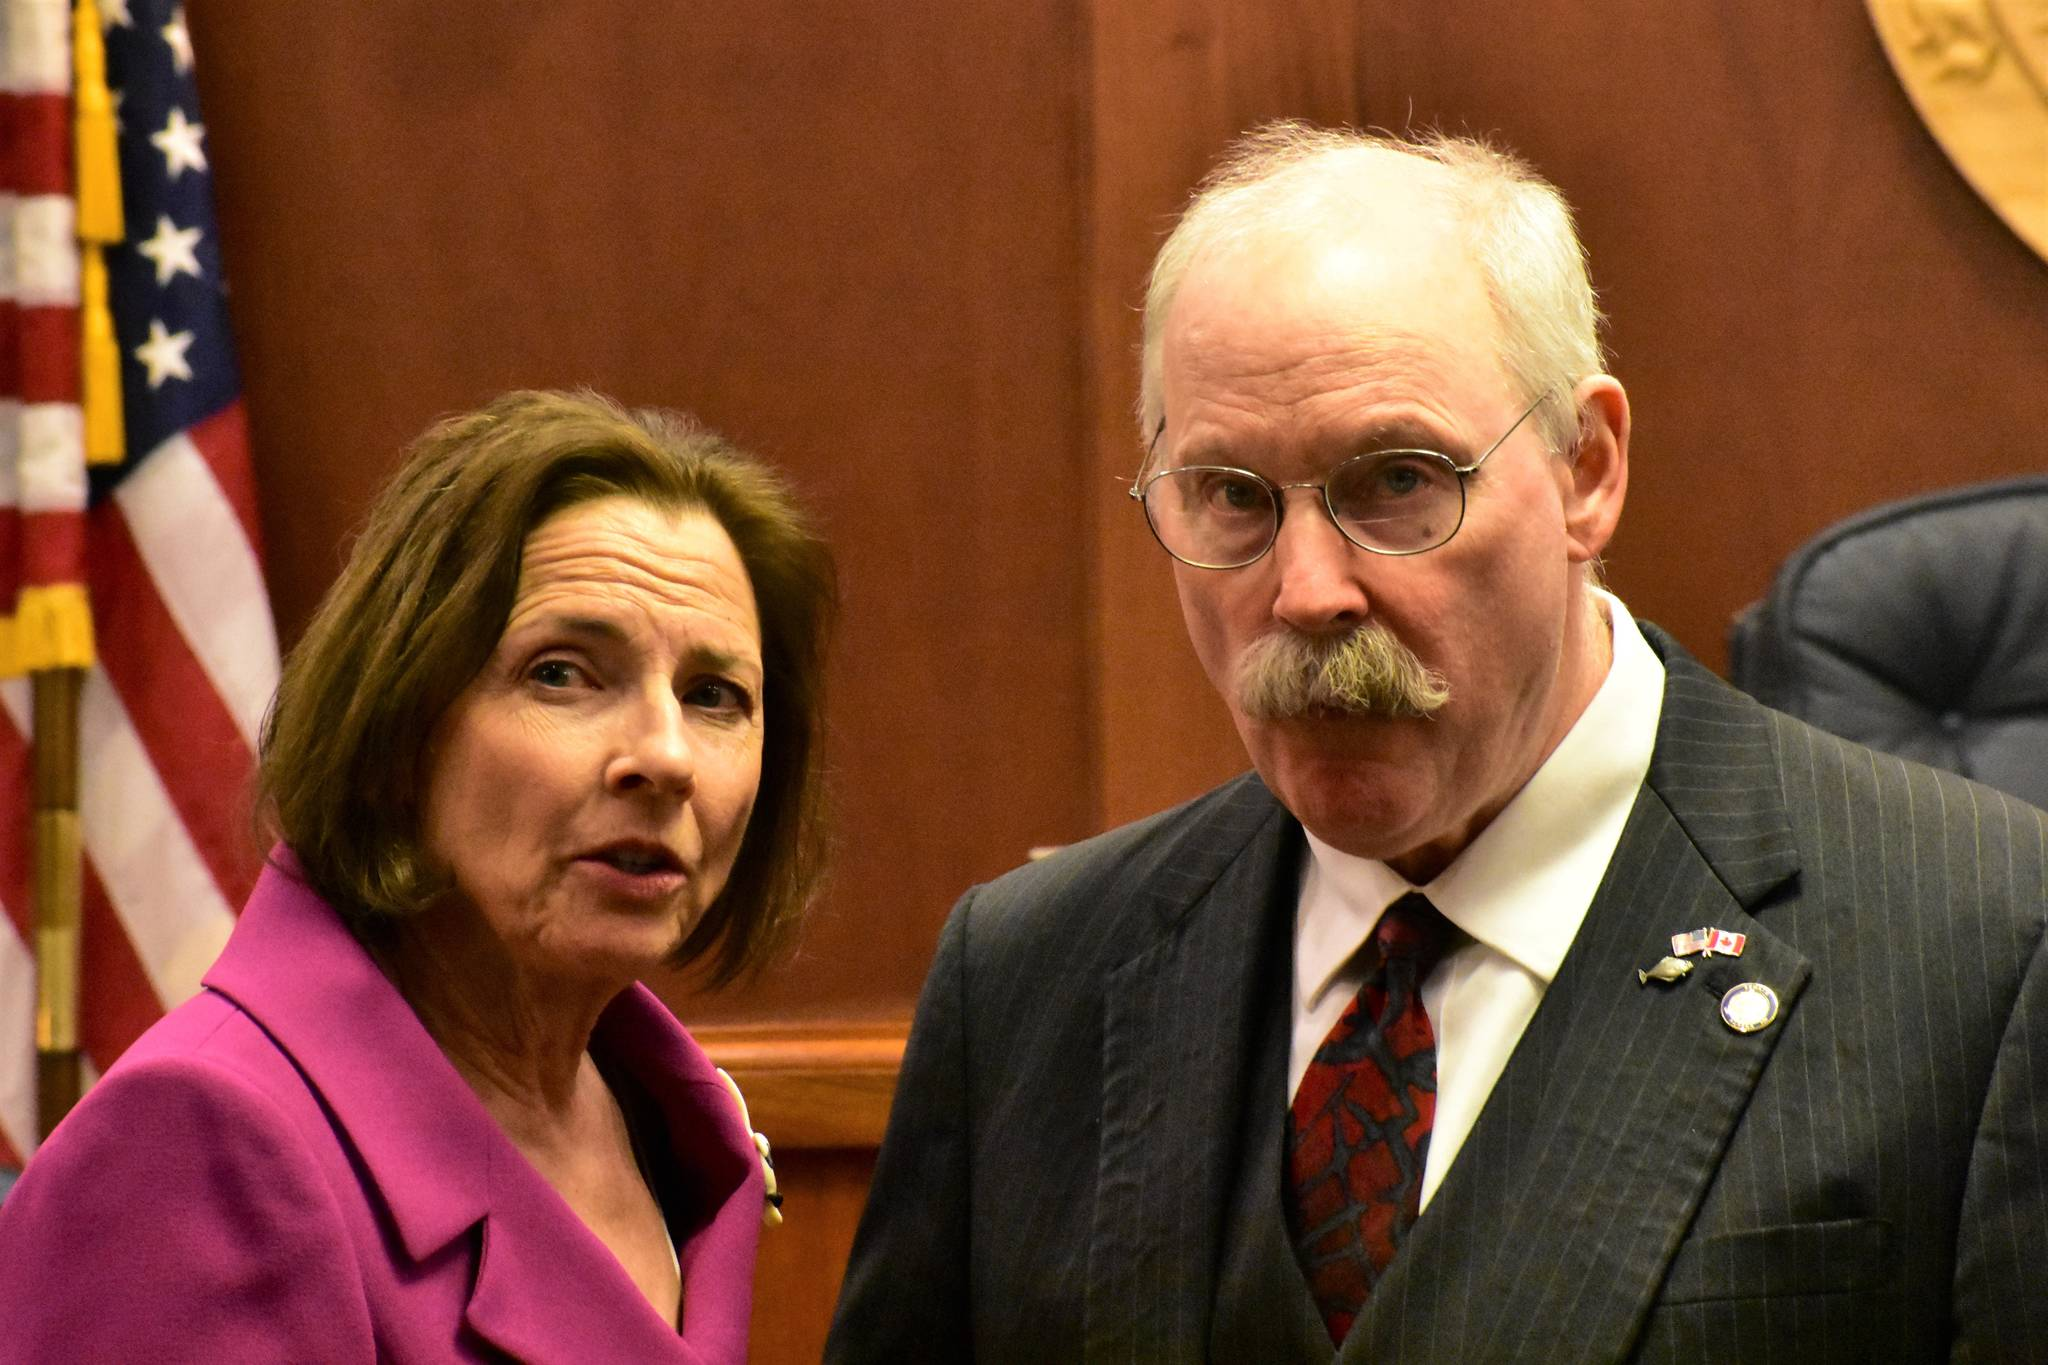 Senate President Cathy Giessel, R-Anchorage, and Sen. Bert Stedman, R-Sitka, talk before the first floor session of the year on Tuesday, Jan. 21, 2020. (Peter Segall | Juneau Empire)